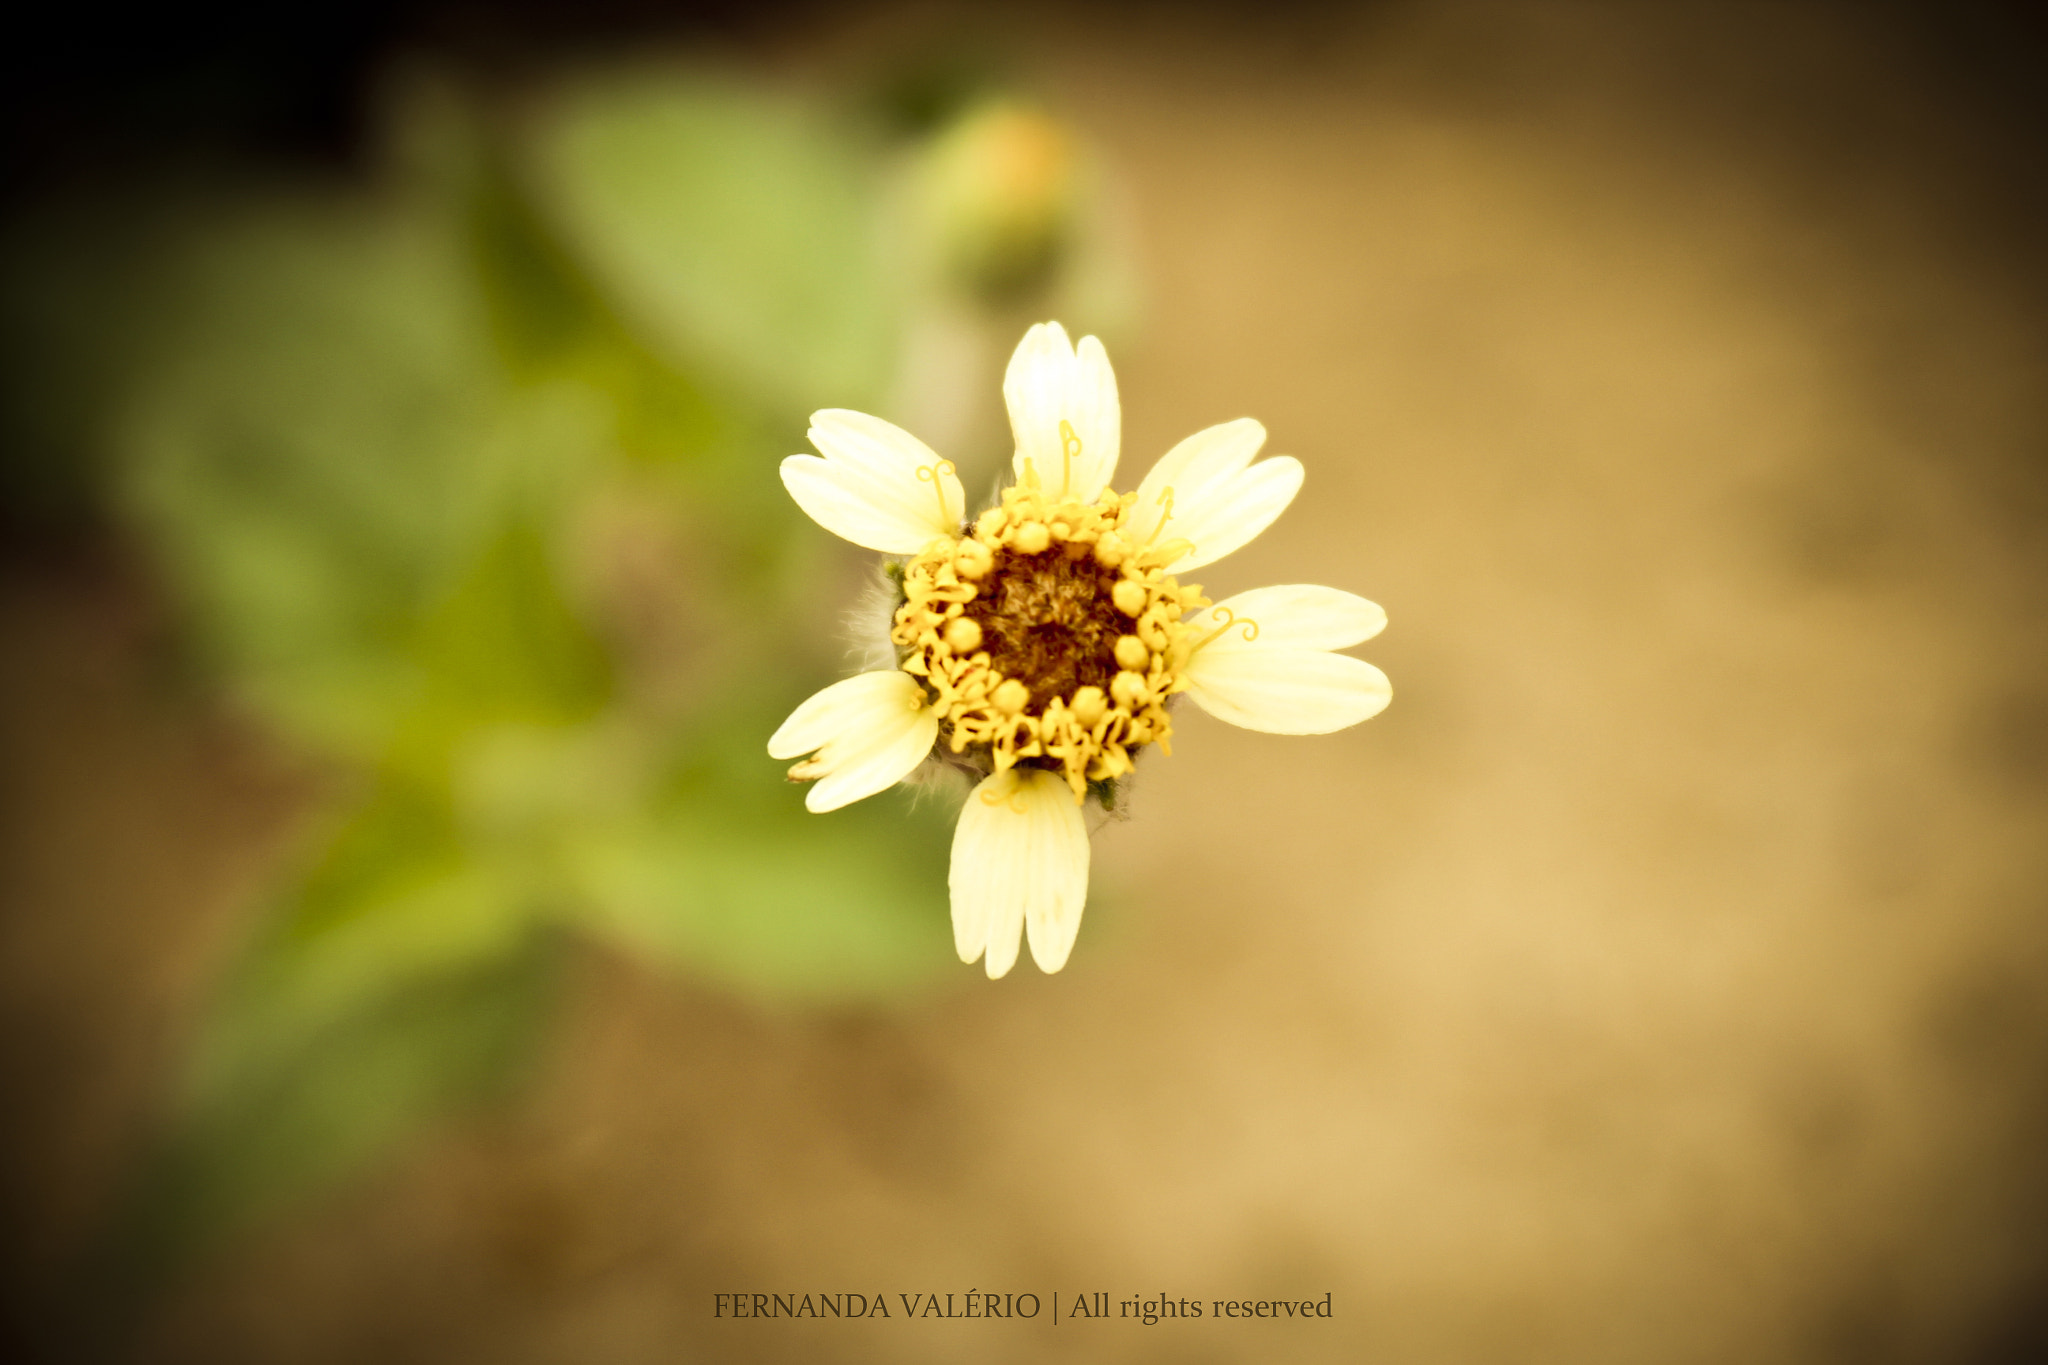 Photograph Branco e amarelo | White and Yellow by Fernanda Valério on 500px